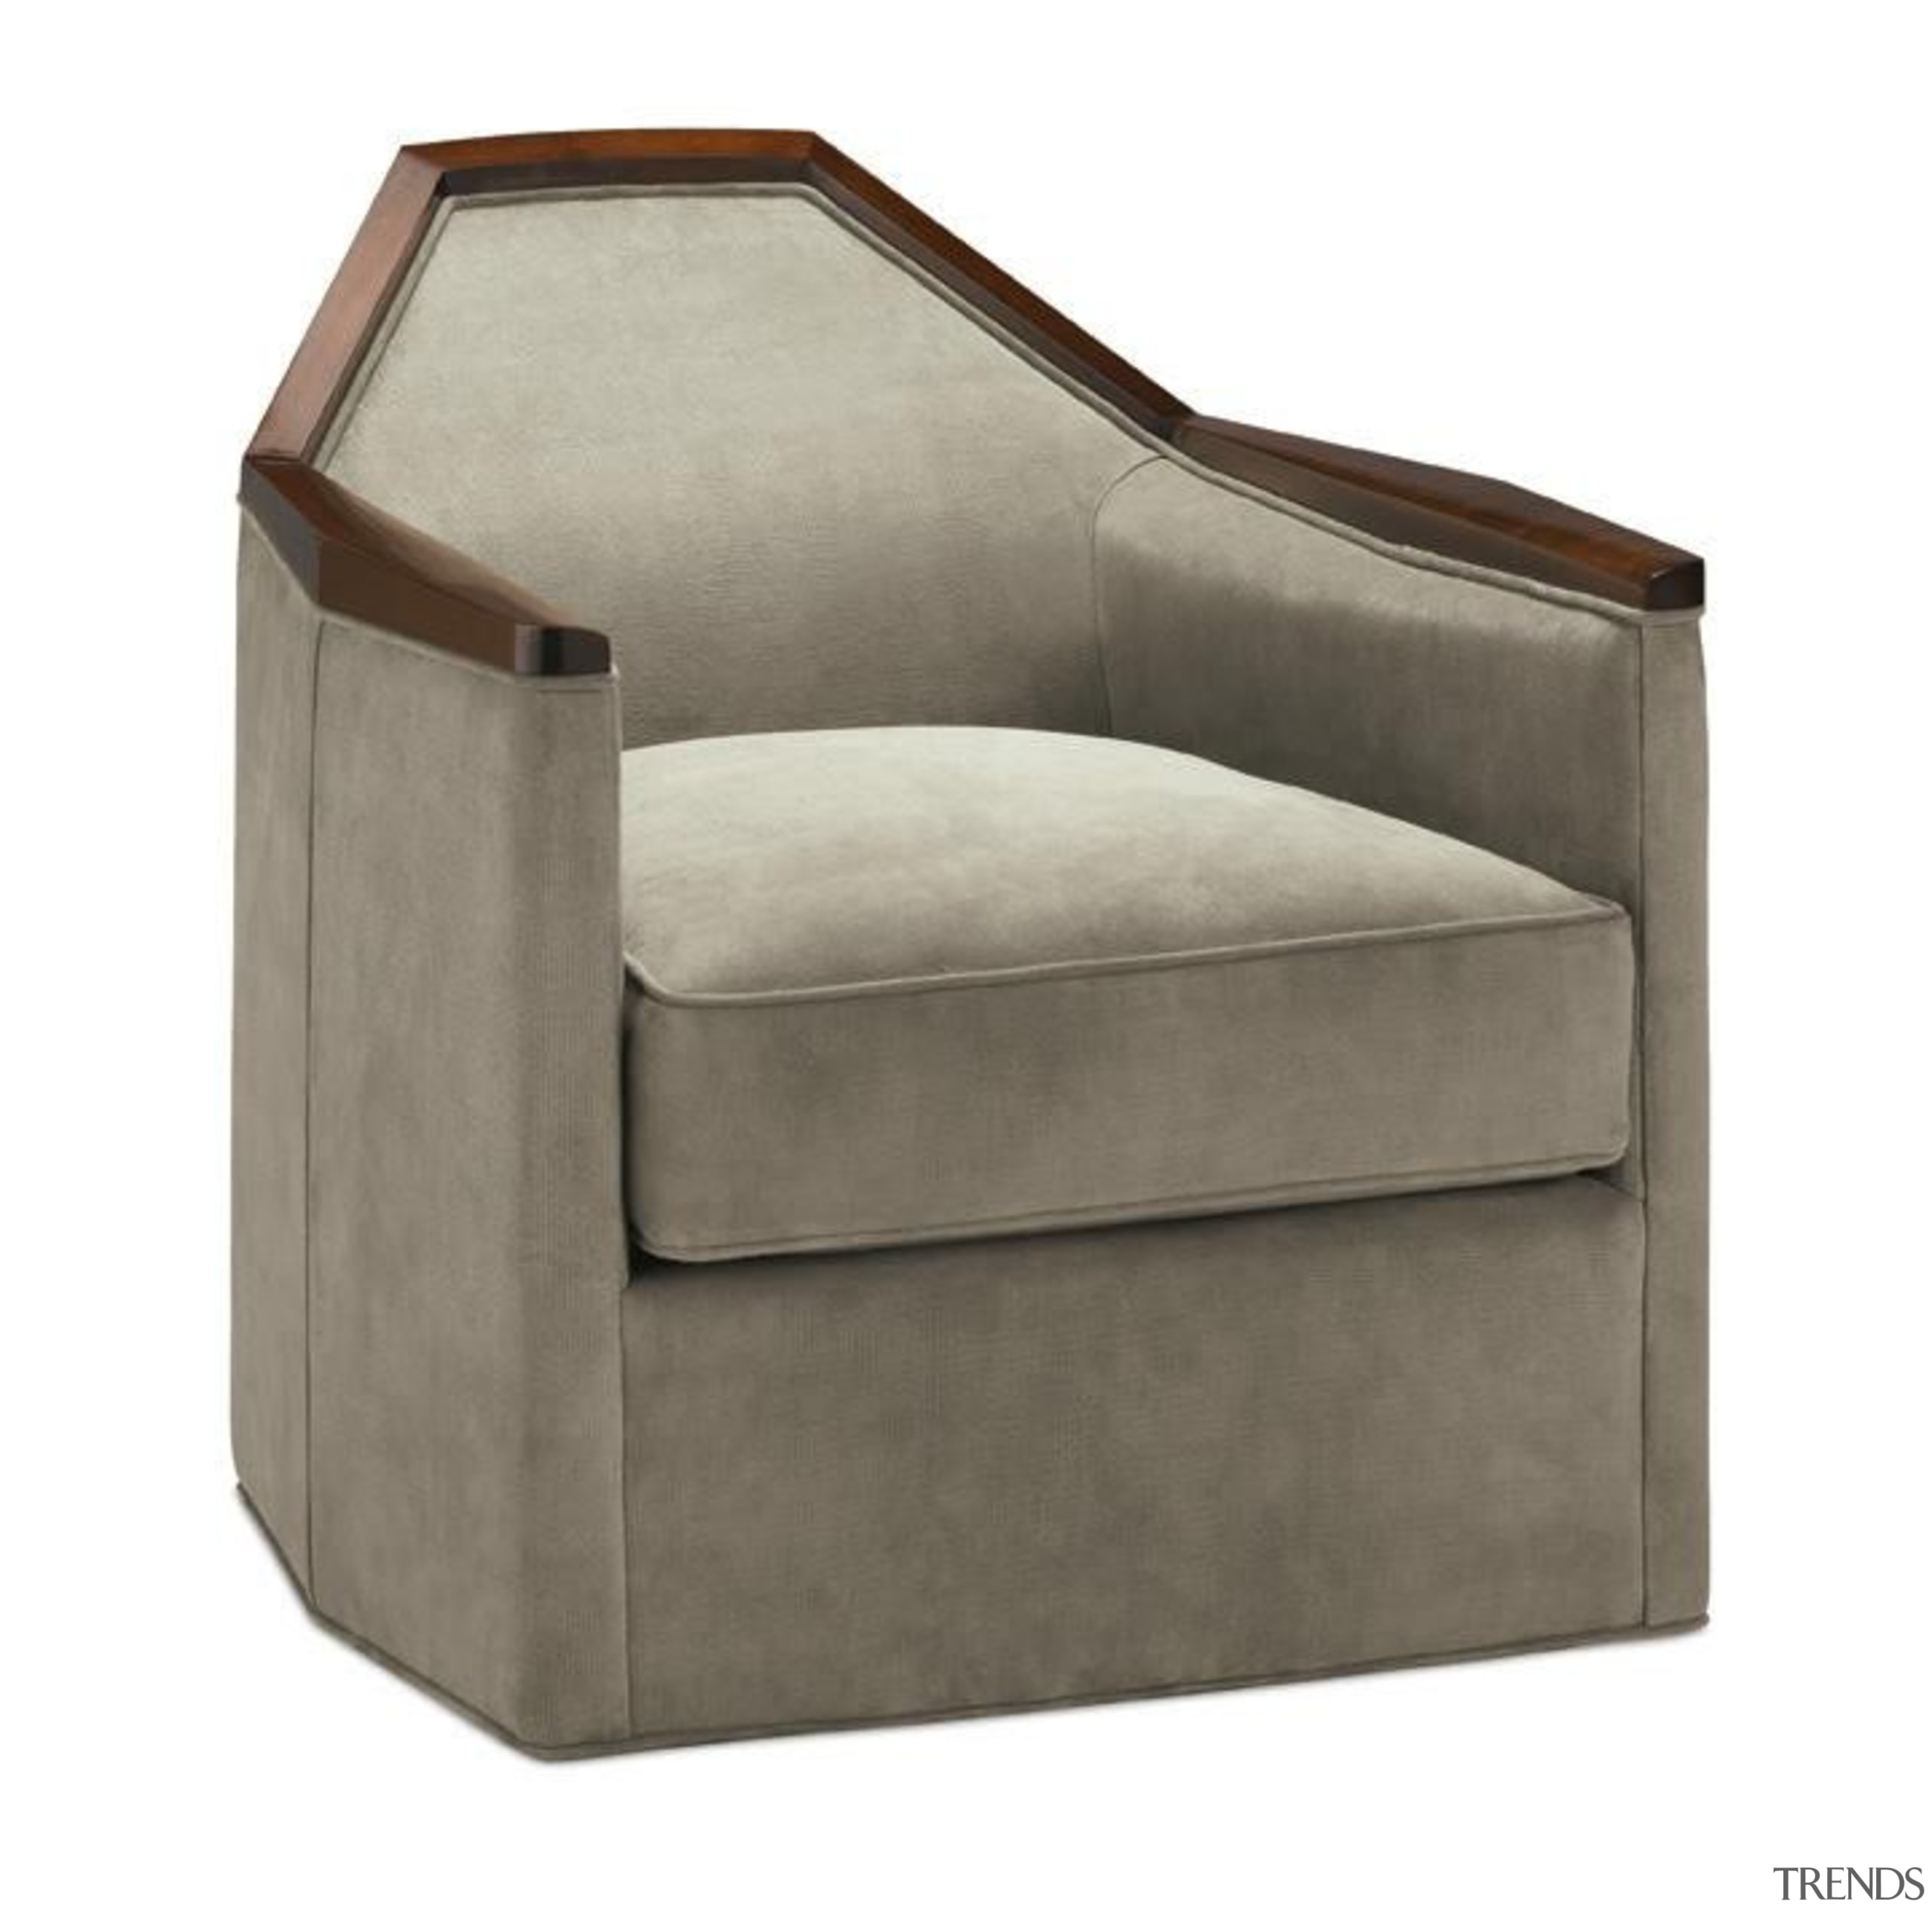 The work of William Sofield is defined not angle, chair, club chair, furniture, product, product design, white, gray